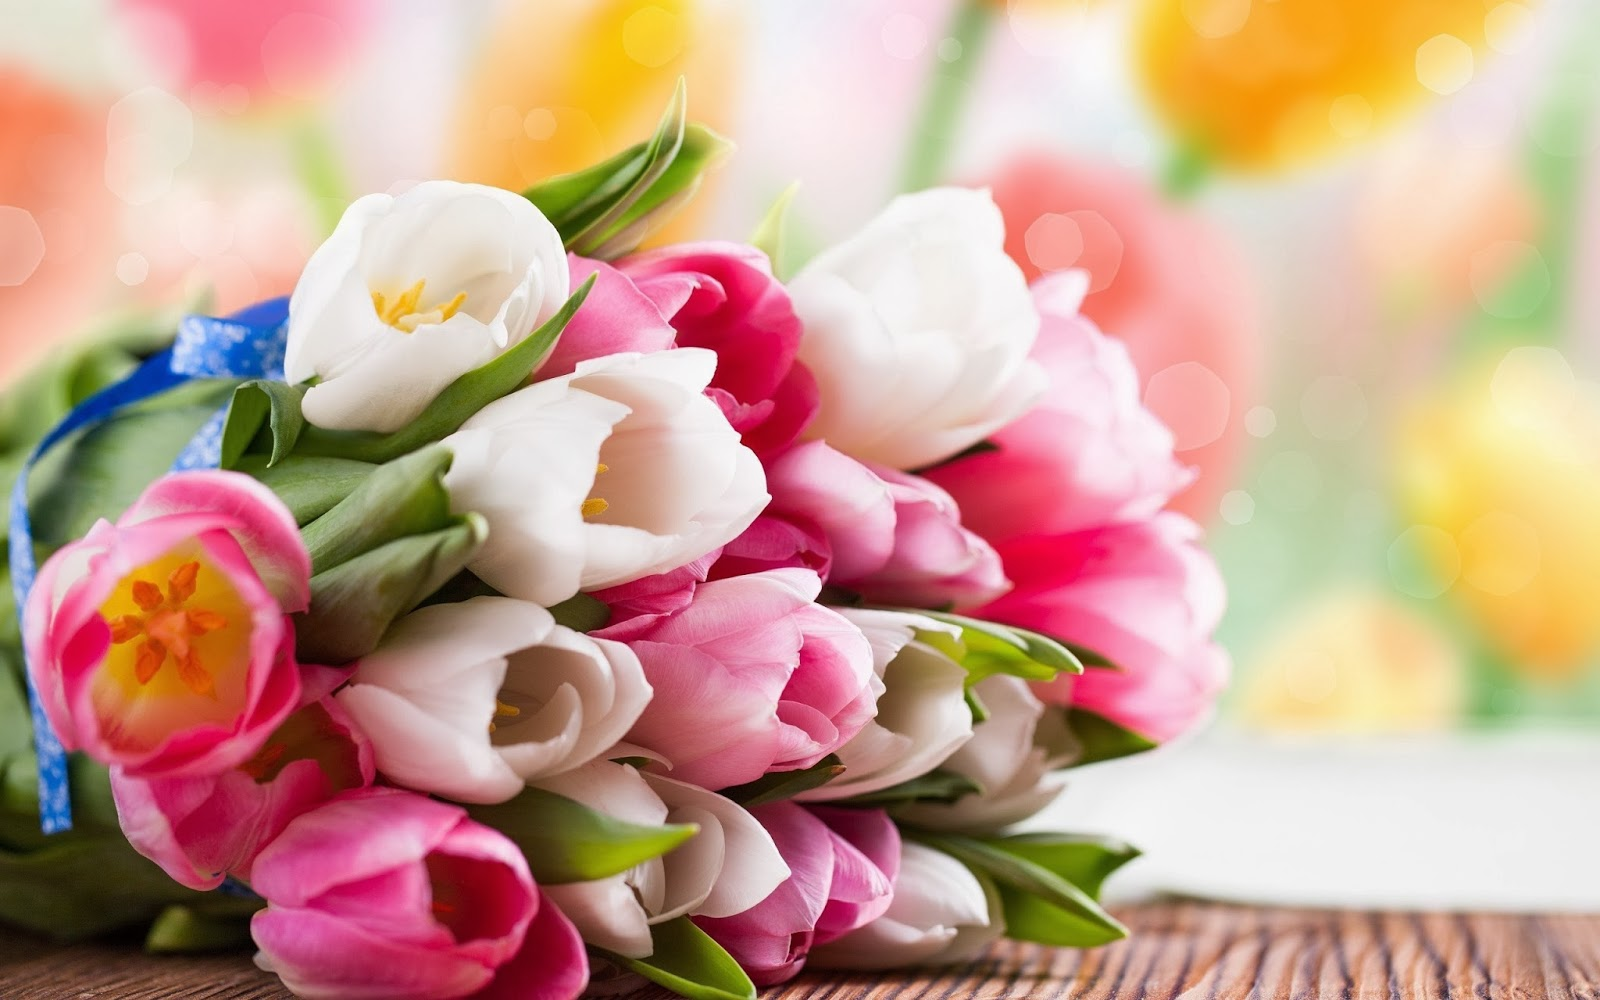 Flower Tulip Bouquet Wallpaper Beauty Walpaper